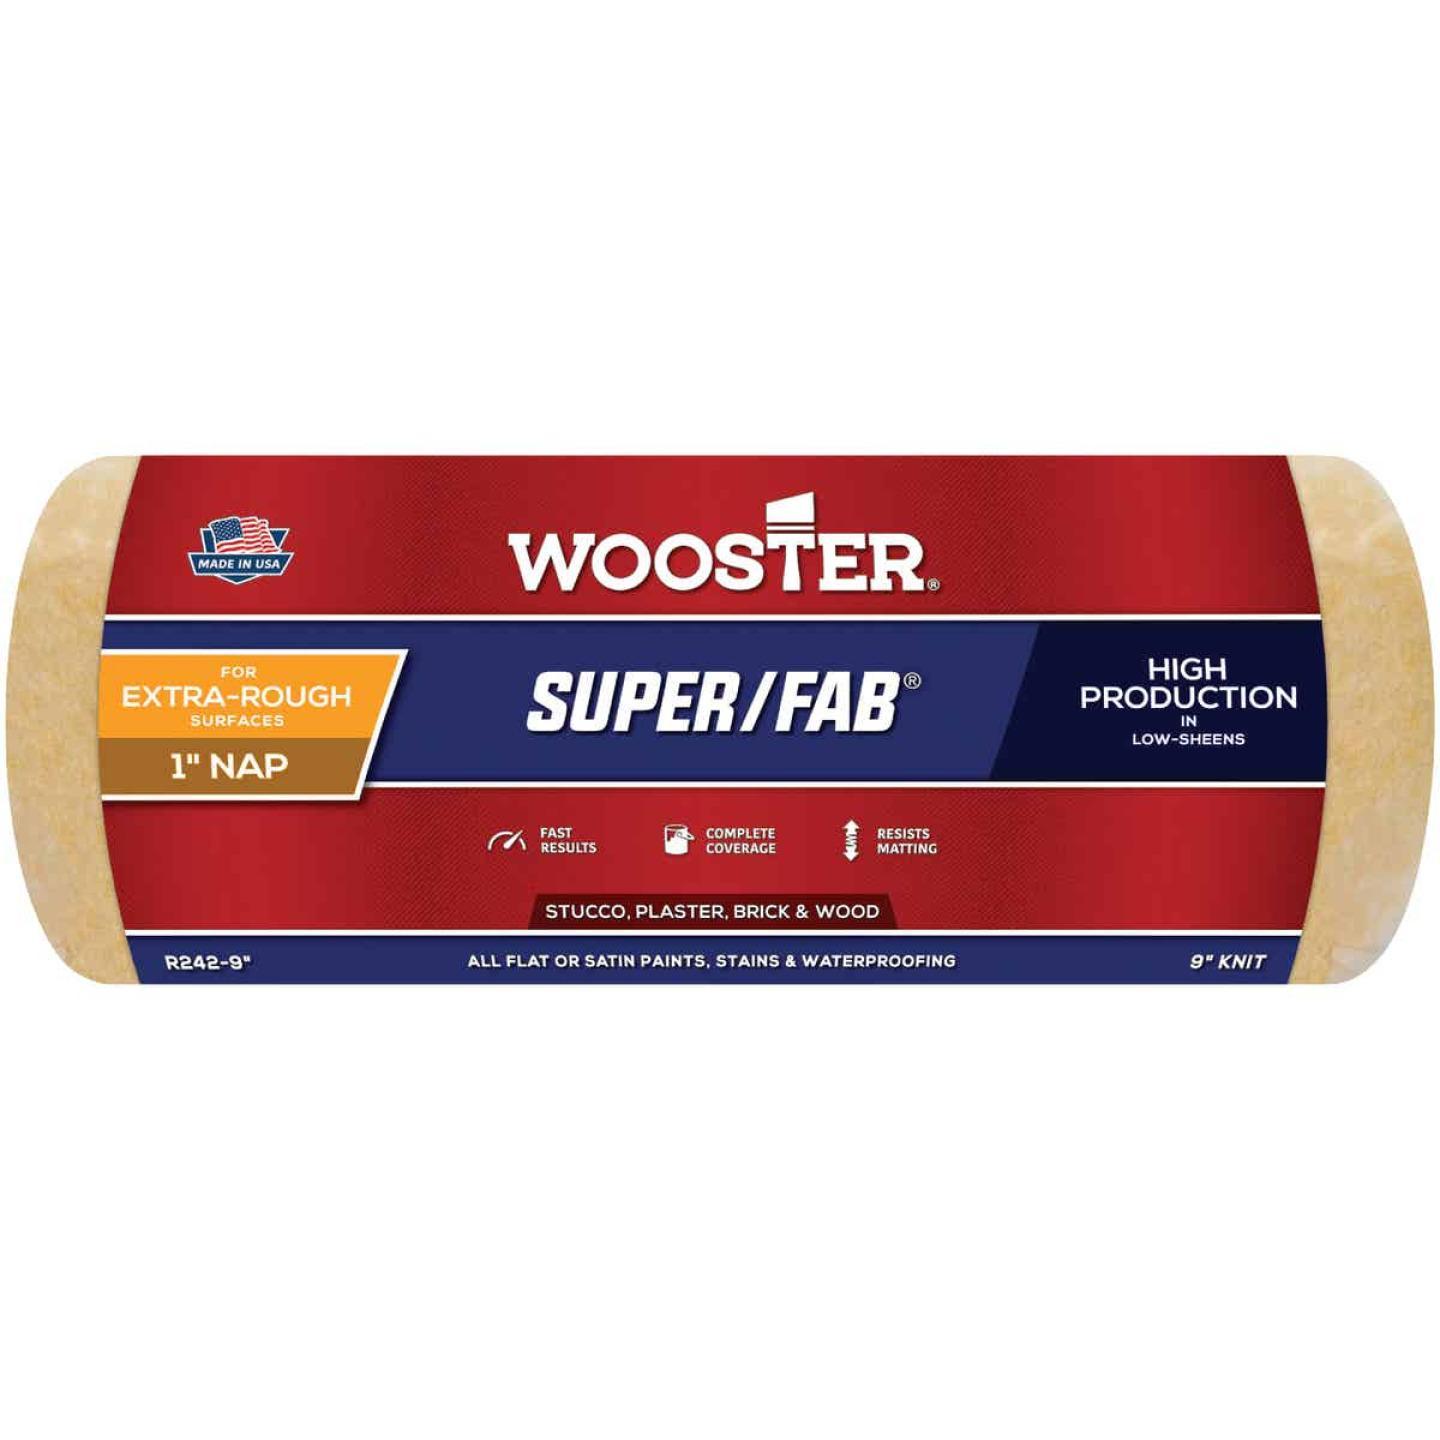 Wooster Super/Fab 9 In. x 1 In. Knit Fabric Roller Cover Image 1